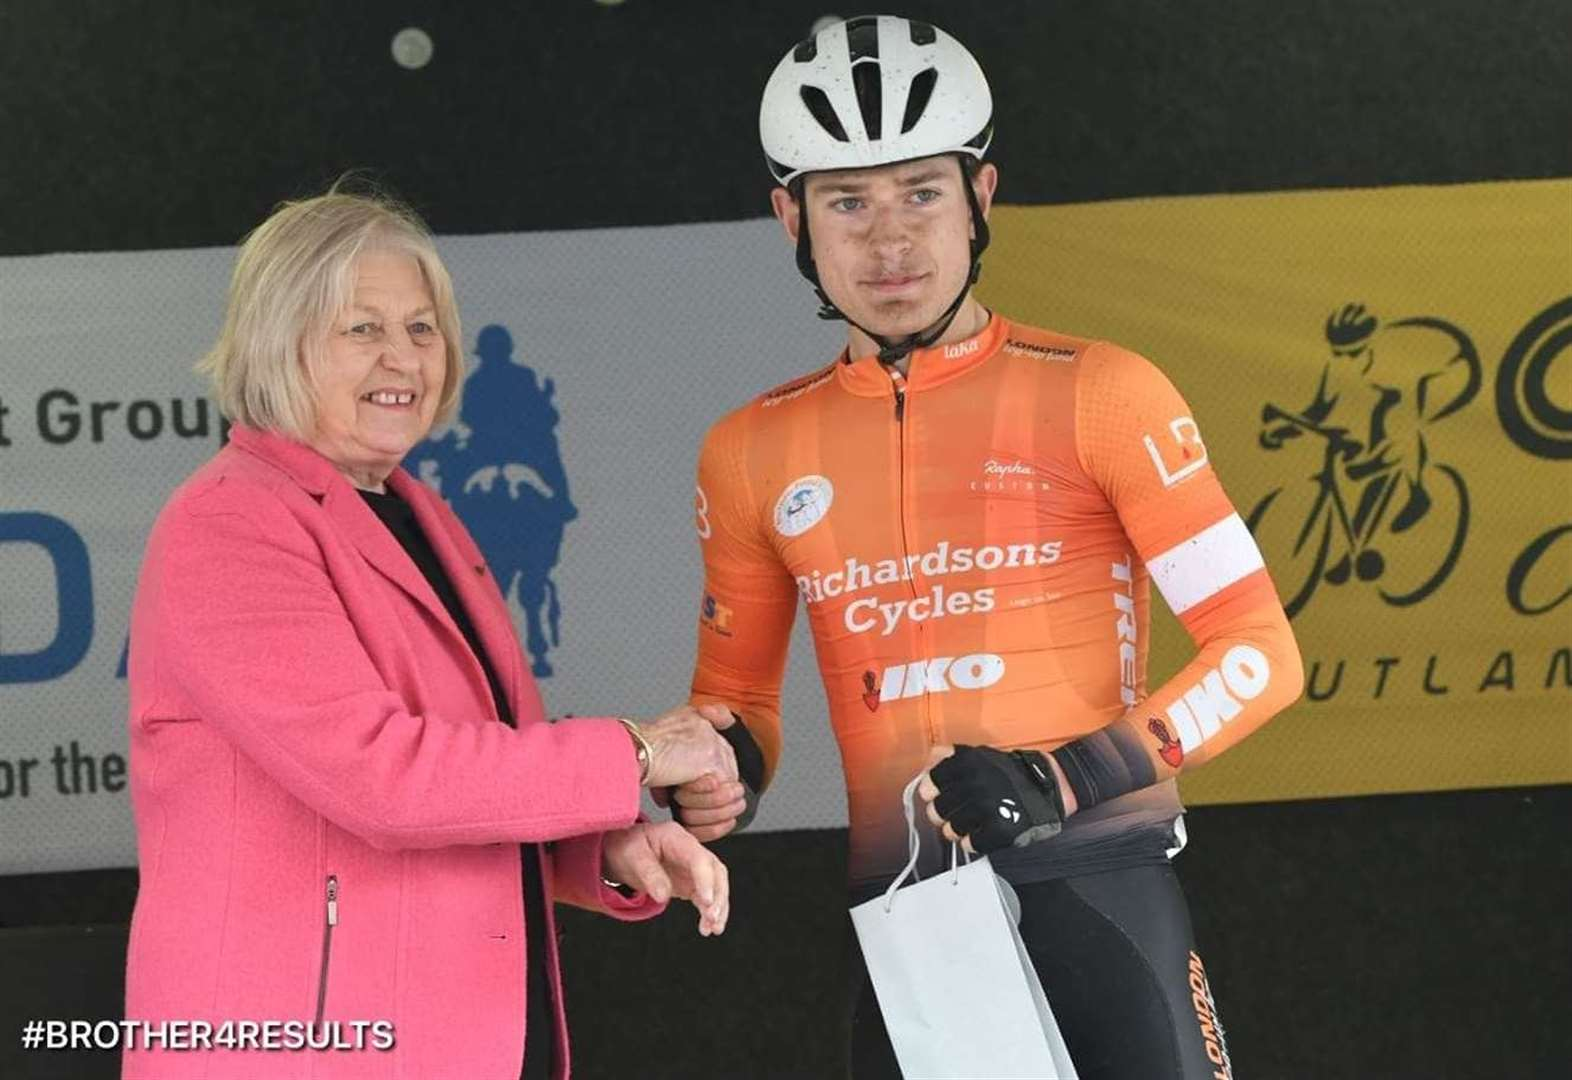 Peter impresses in top cycling road races